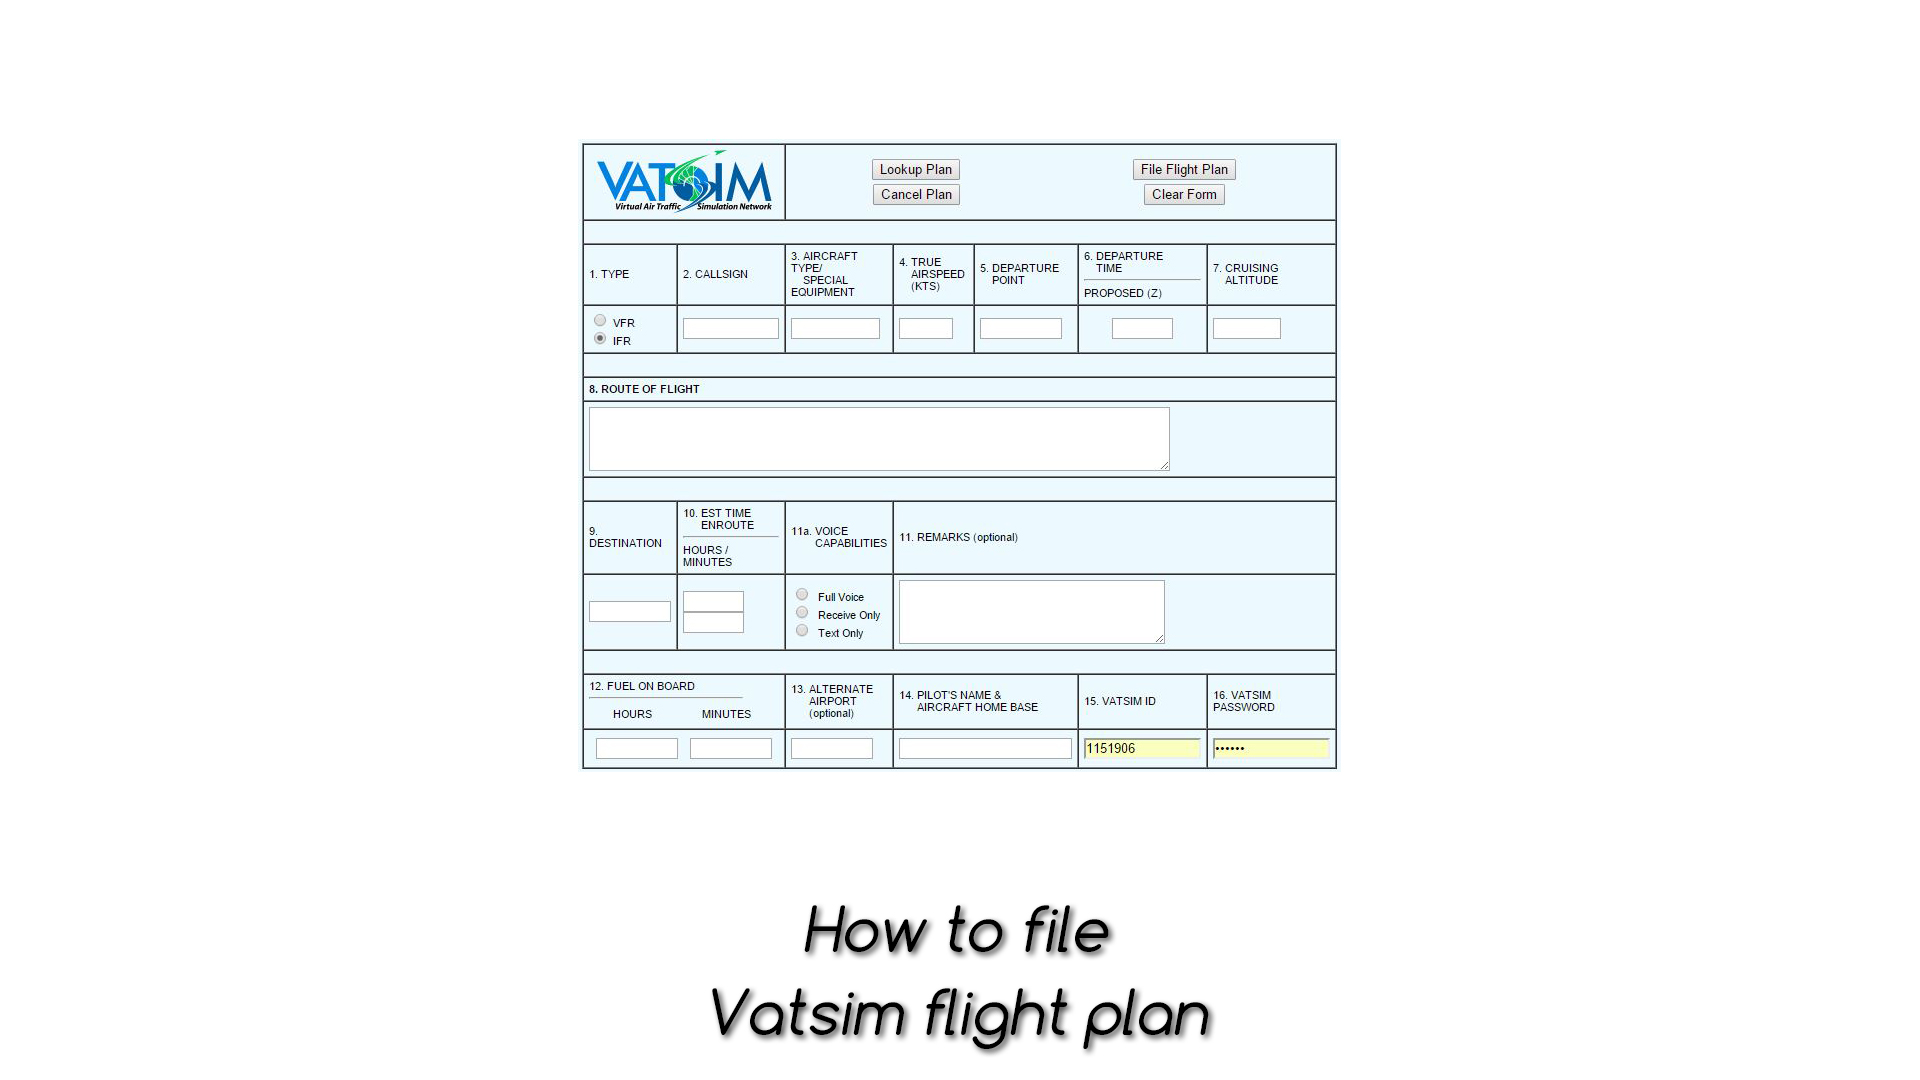 How to file Vatsim flight plan